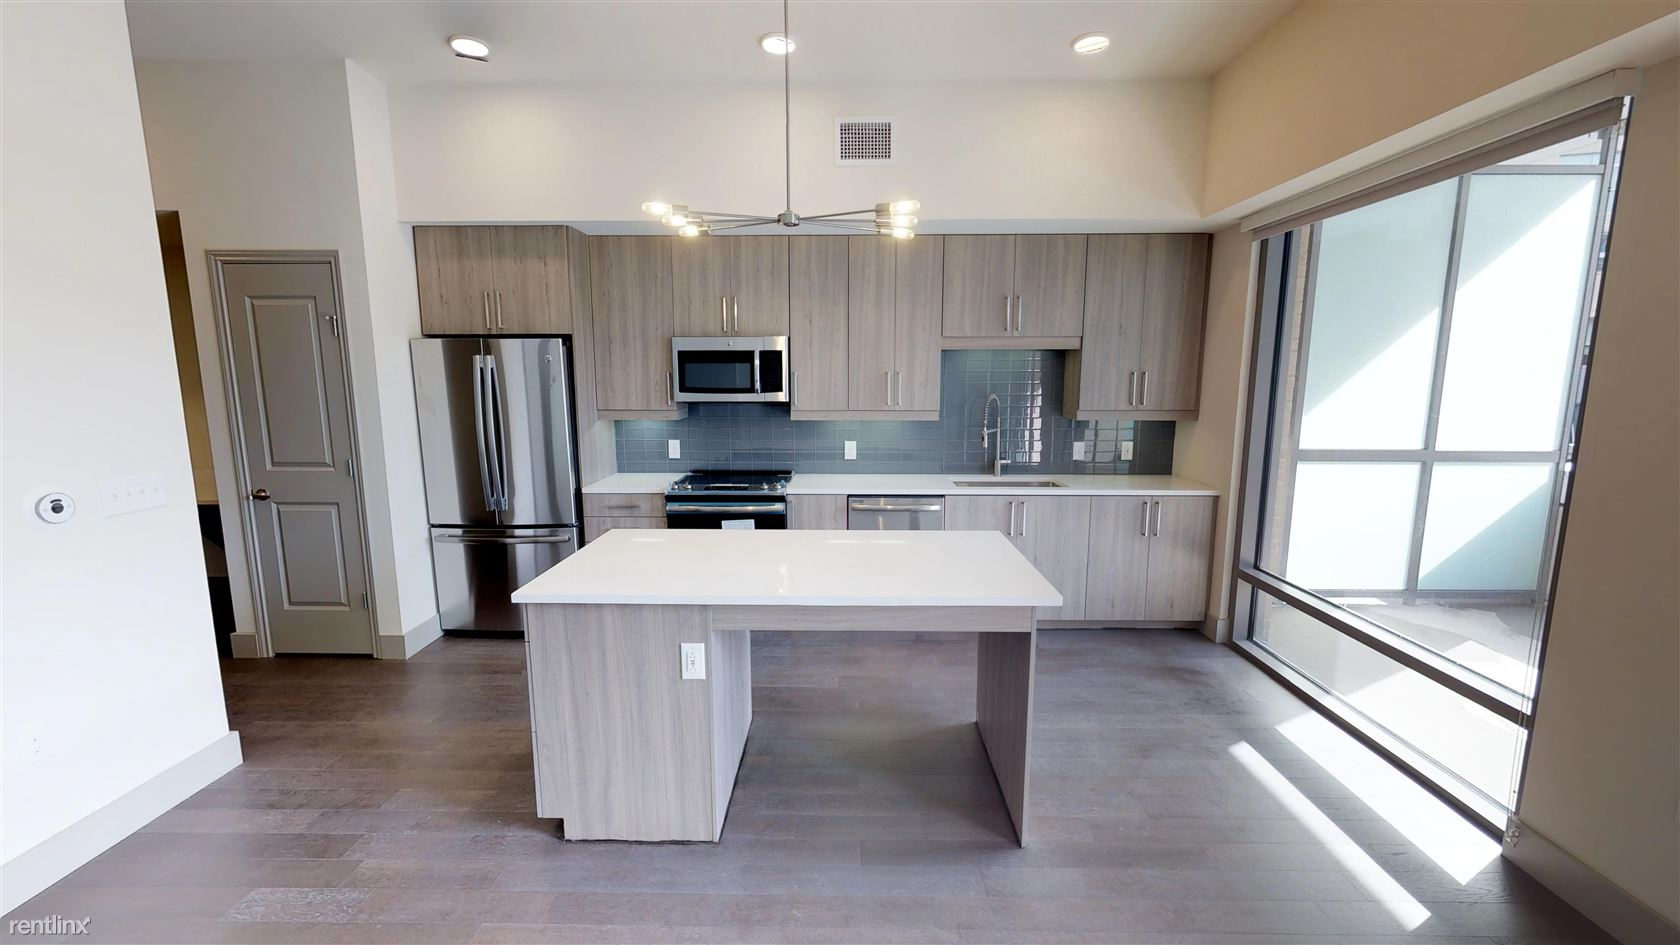 2370 Victory Avenue - 3513USD / month